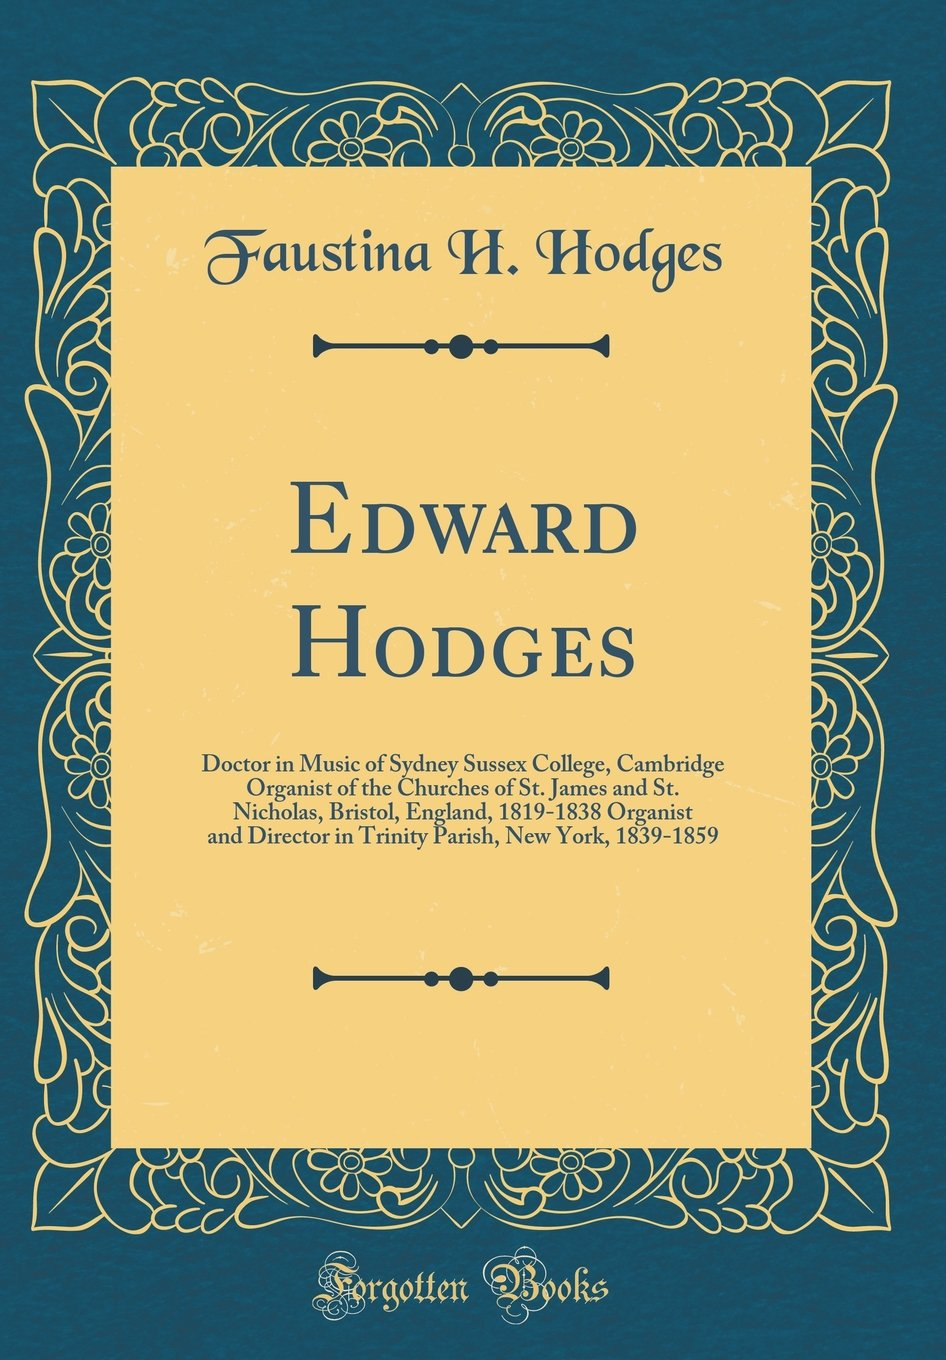 Download Edward Hodges: Doctor in Music of Sydney Sussex College, Cambridge Organist of the Churches of St. James and St. Nicholas, Bristol, England, 1819-1838 ... Parish, New York, 1839-1859 (Classic Reprint) pdf epub